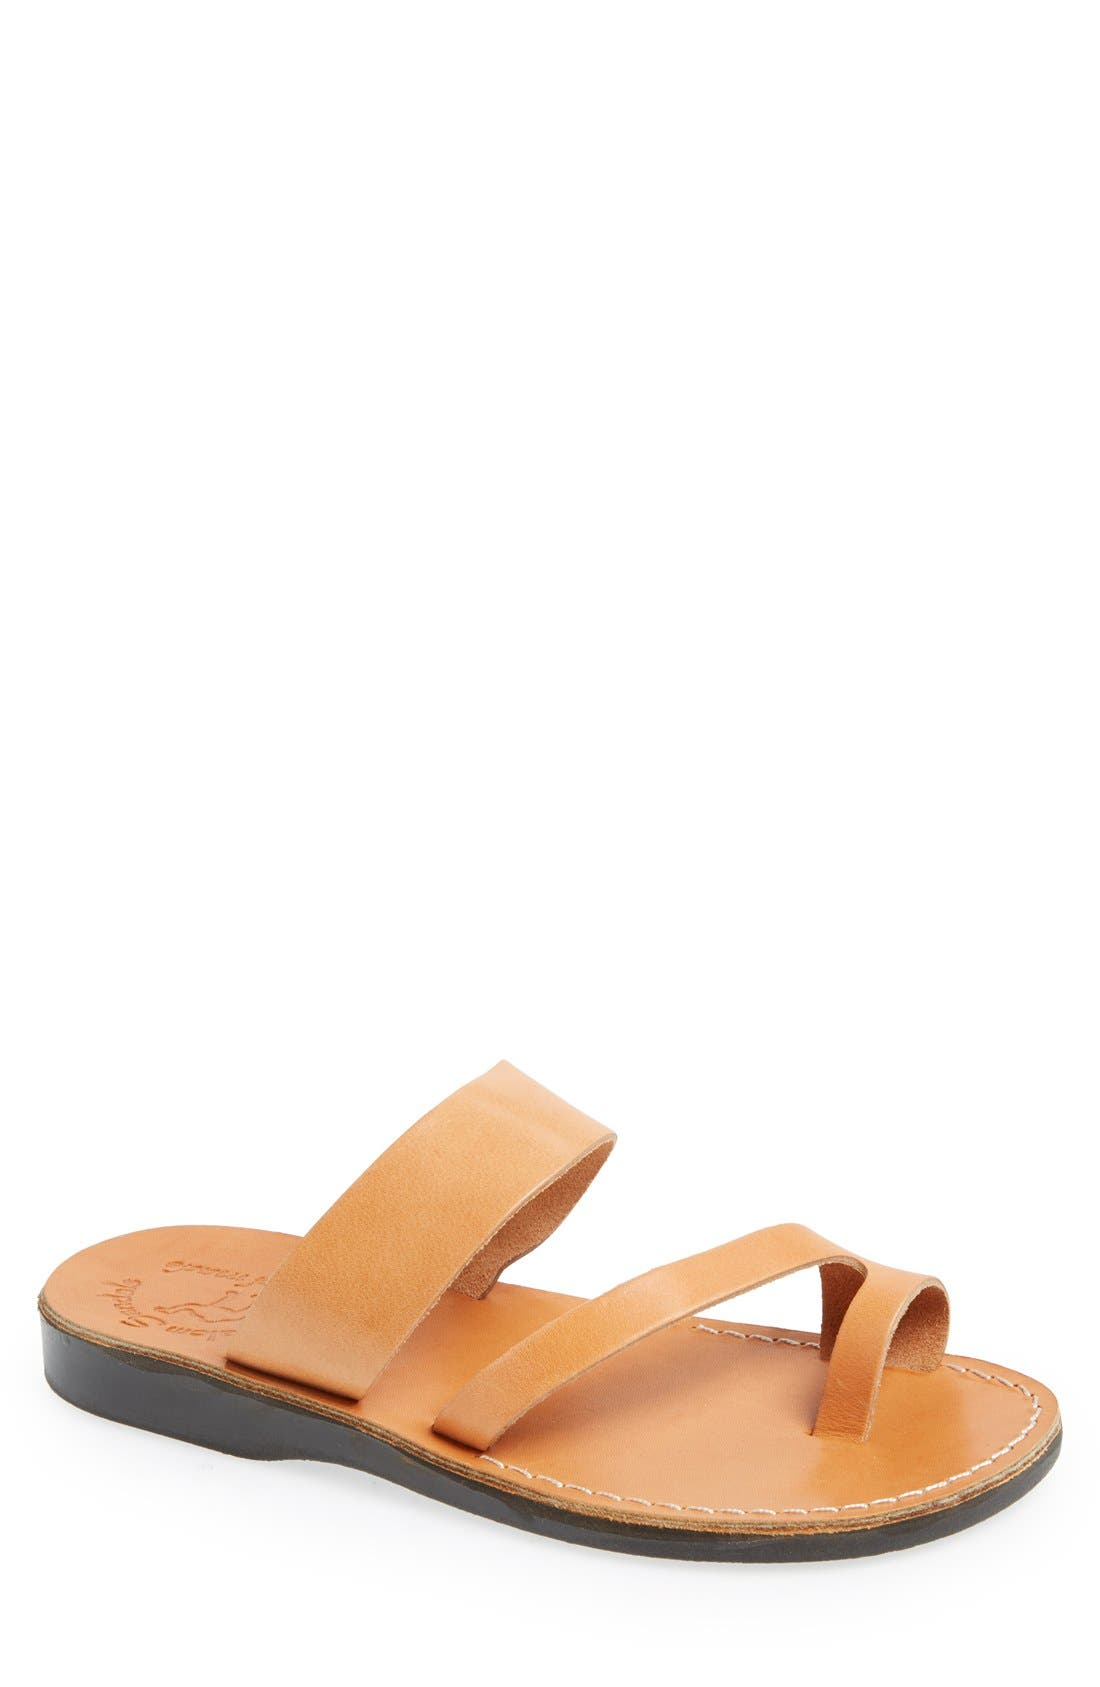 'Zohar' Leather Sandal,                         Main,                         color, 201